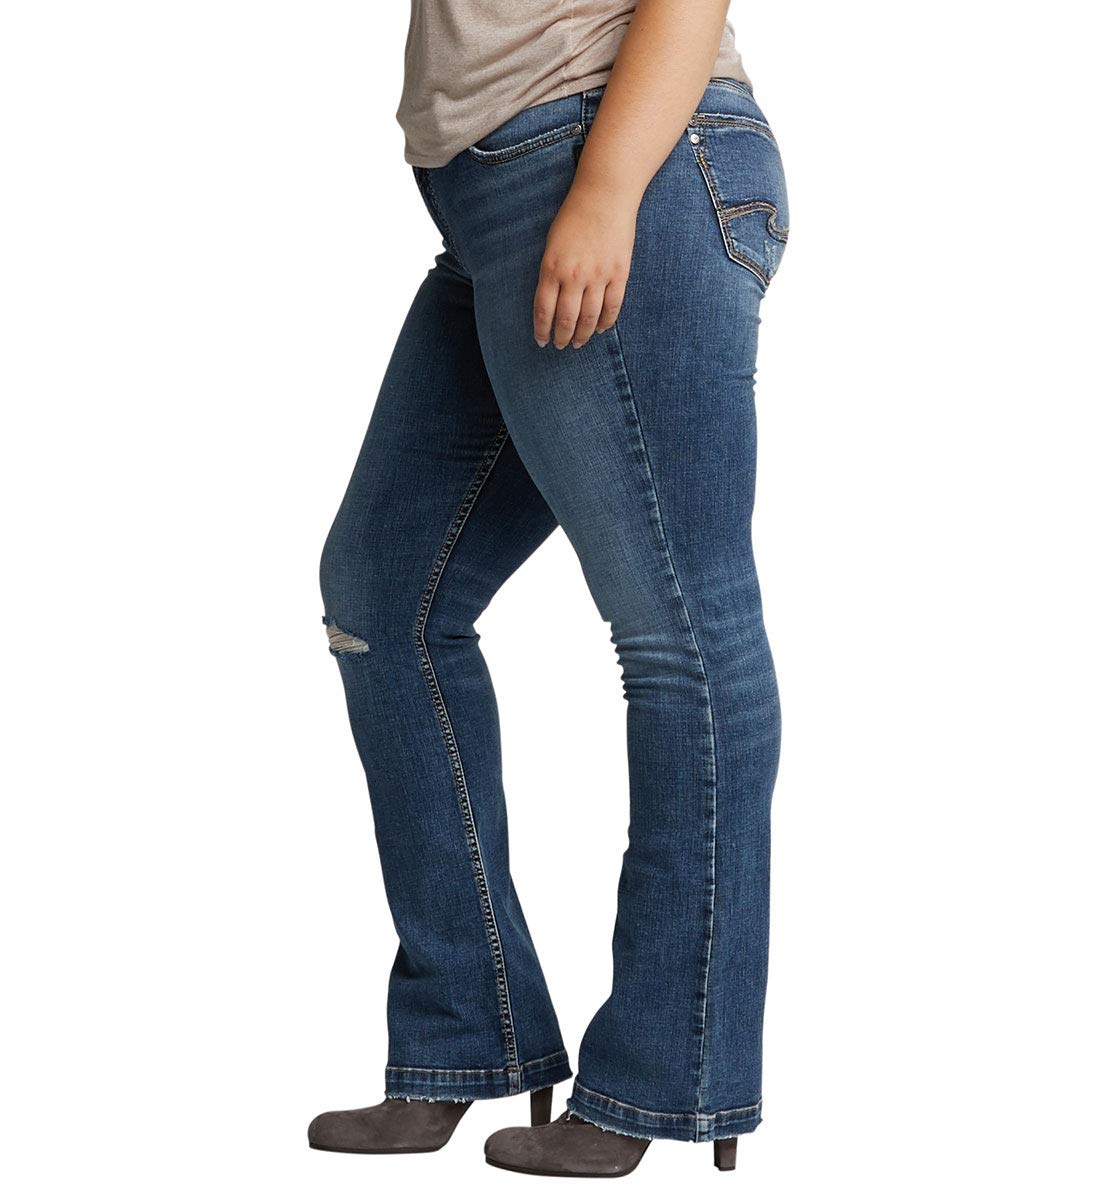 ad30c66966033 Silver Jeans Co. Women s Plus Size Elyse Relaxed Fit Mid Rise Slim Bootcut.  About this product. Picture 1 of 4  Picture 2 of 4  Picture 3 of 4 ...